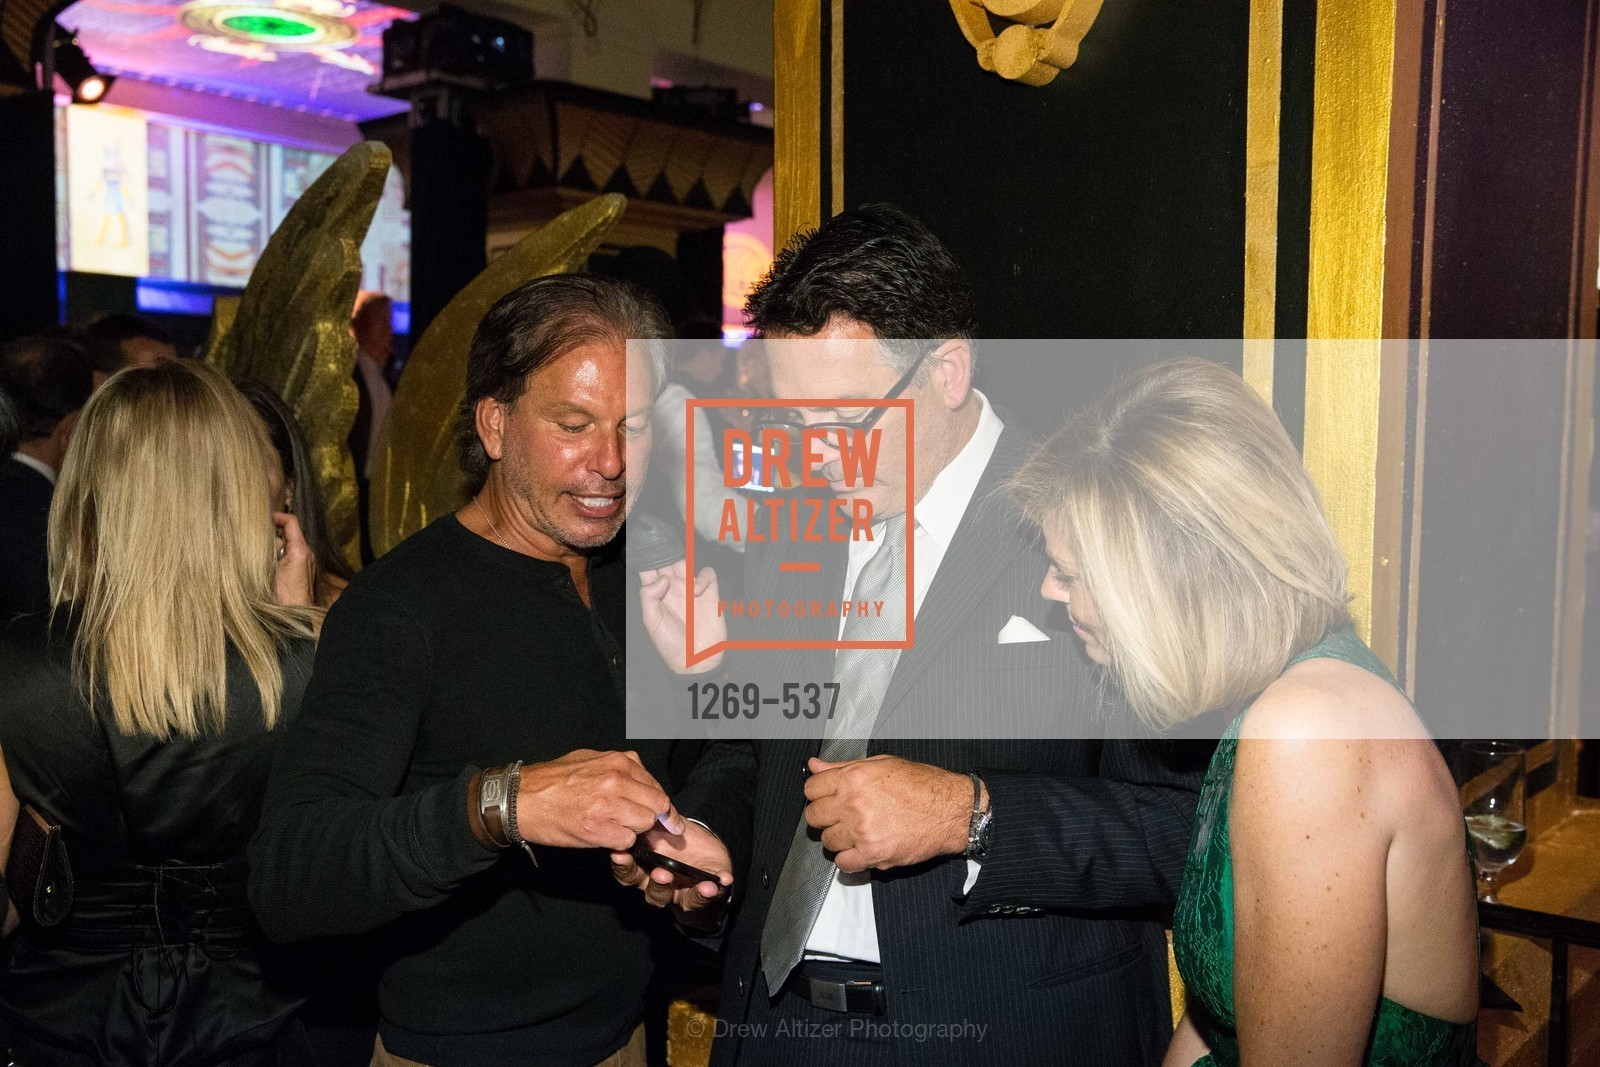 Gary Friedman, Kimberly Miller, Michael Polenske, TOP OF THE MARK'S 75TH Anniversary Party, US, November 6th, 2014,Drew Altizer, Drew Altizer Photography, full-service agency, private events, San Francisco photographer, photographer california